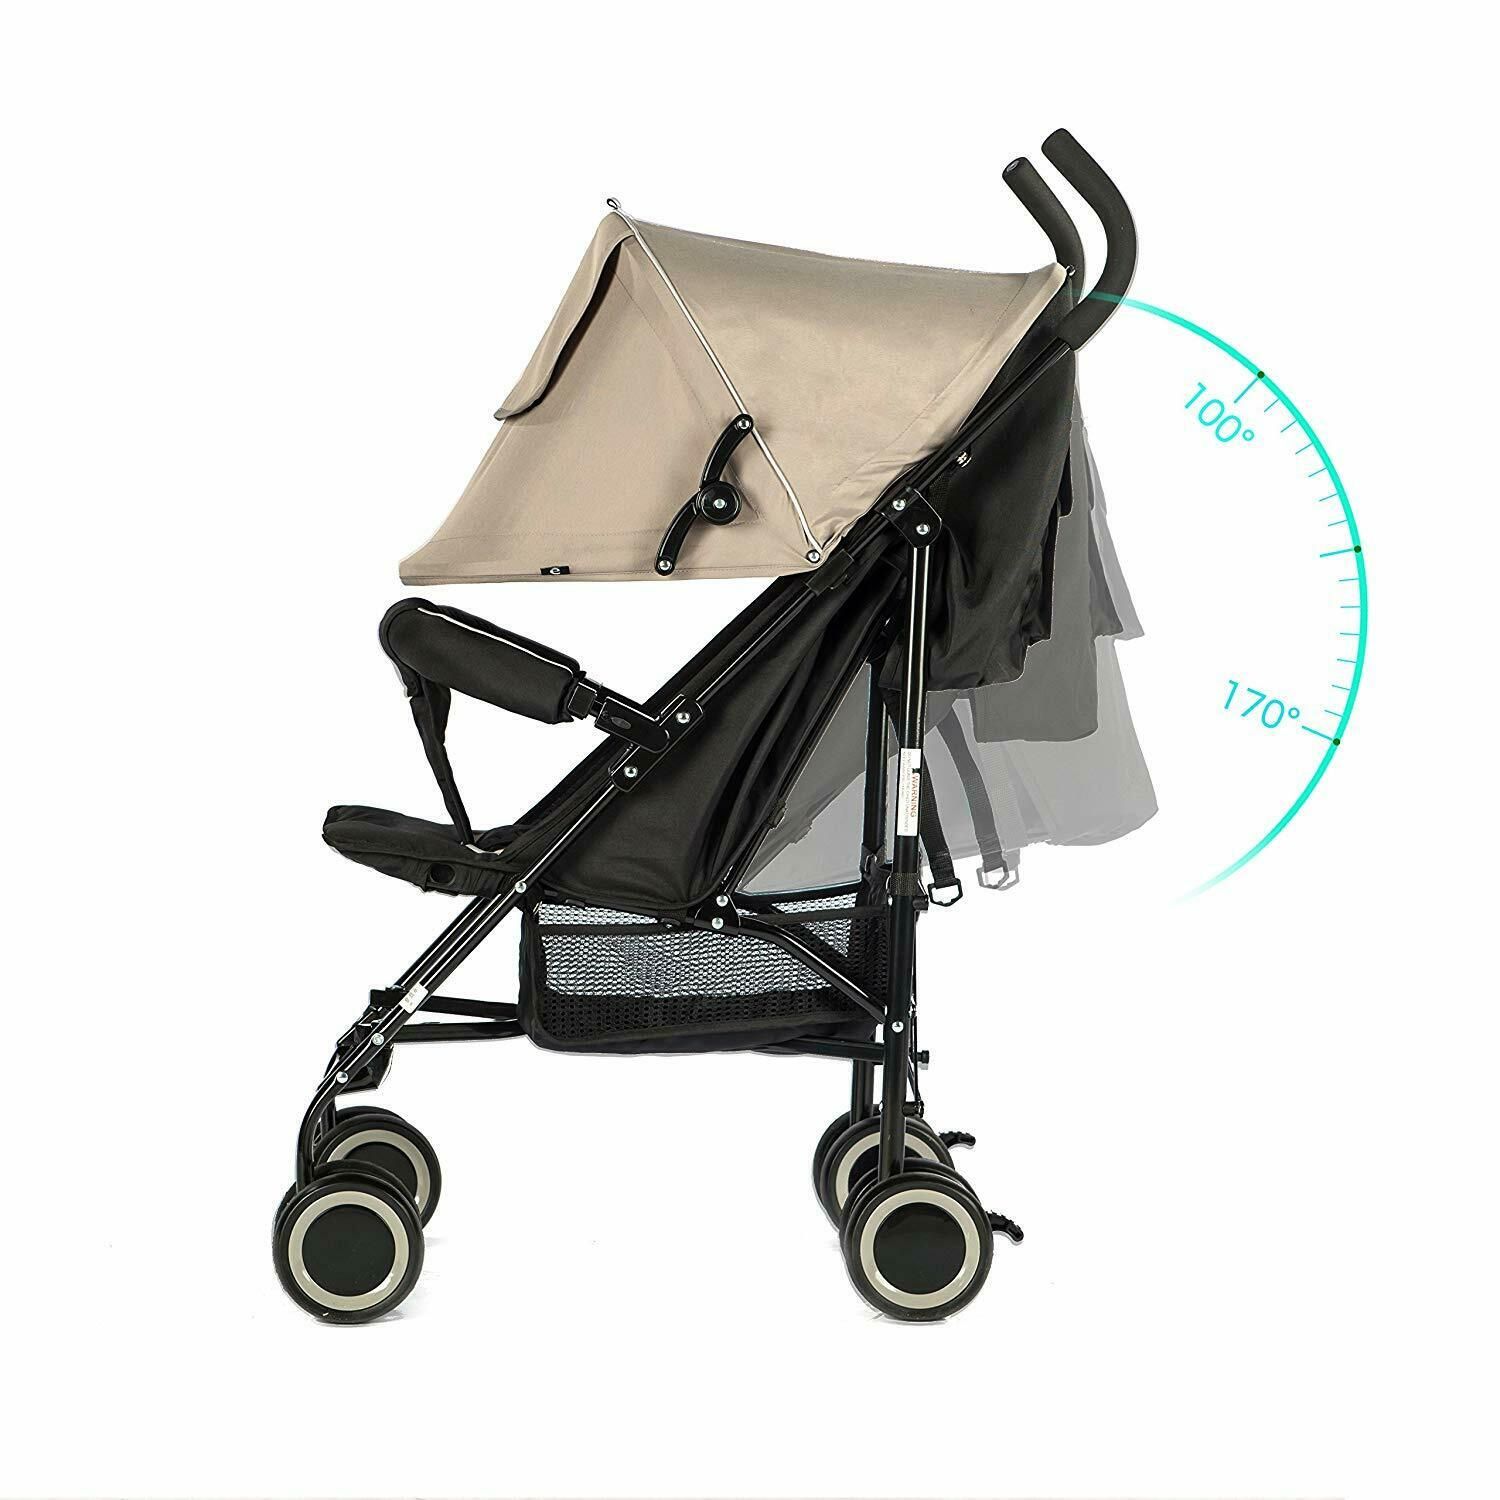 Evezo Travis Lightweight Compact Umbrella Toddlers Stroller